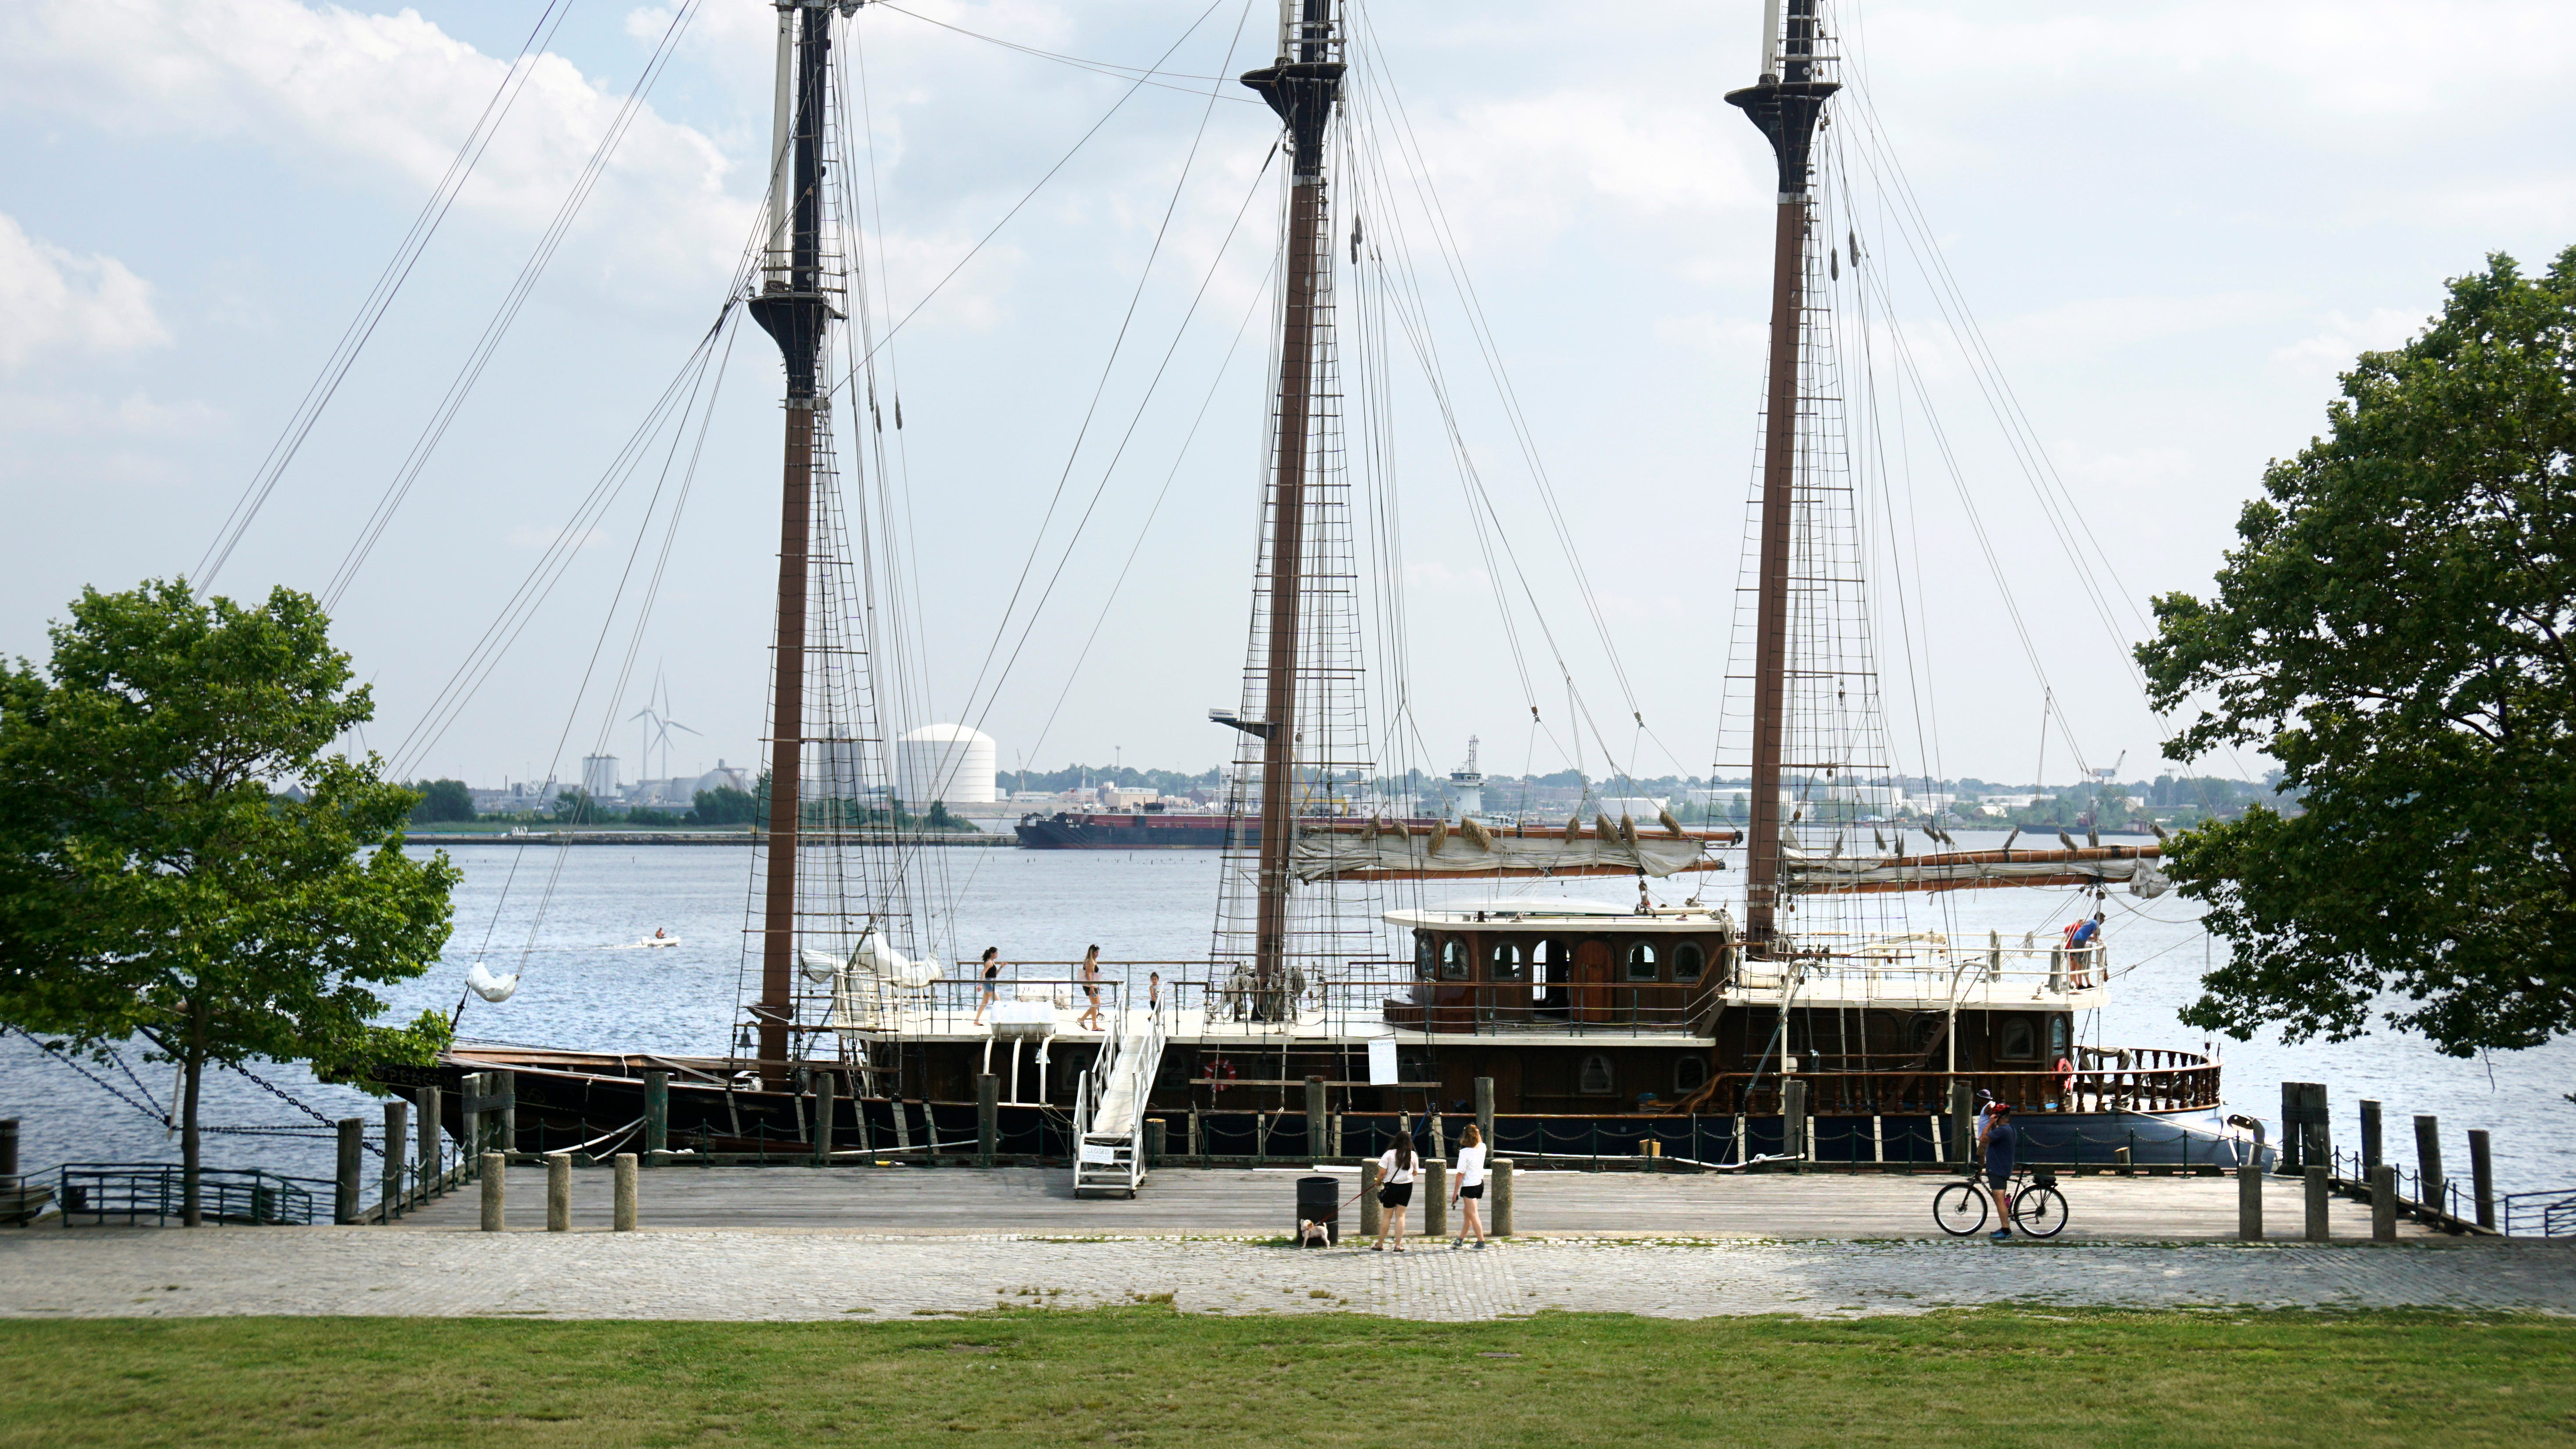 A tall ship docked in Rhode Island is home to the controversial Twelve Tribes religious  cult